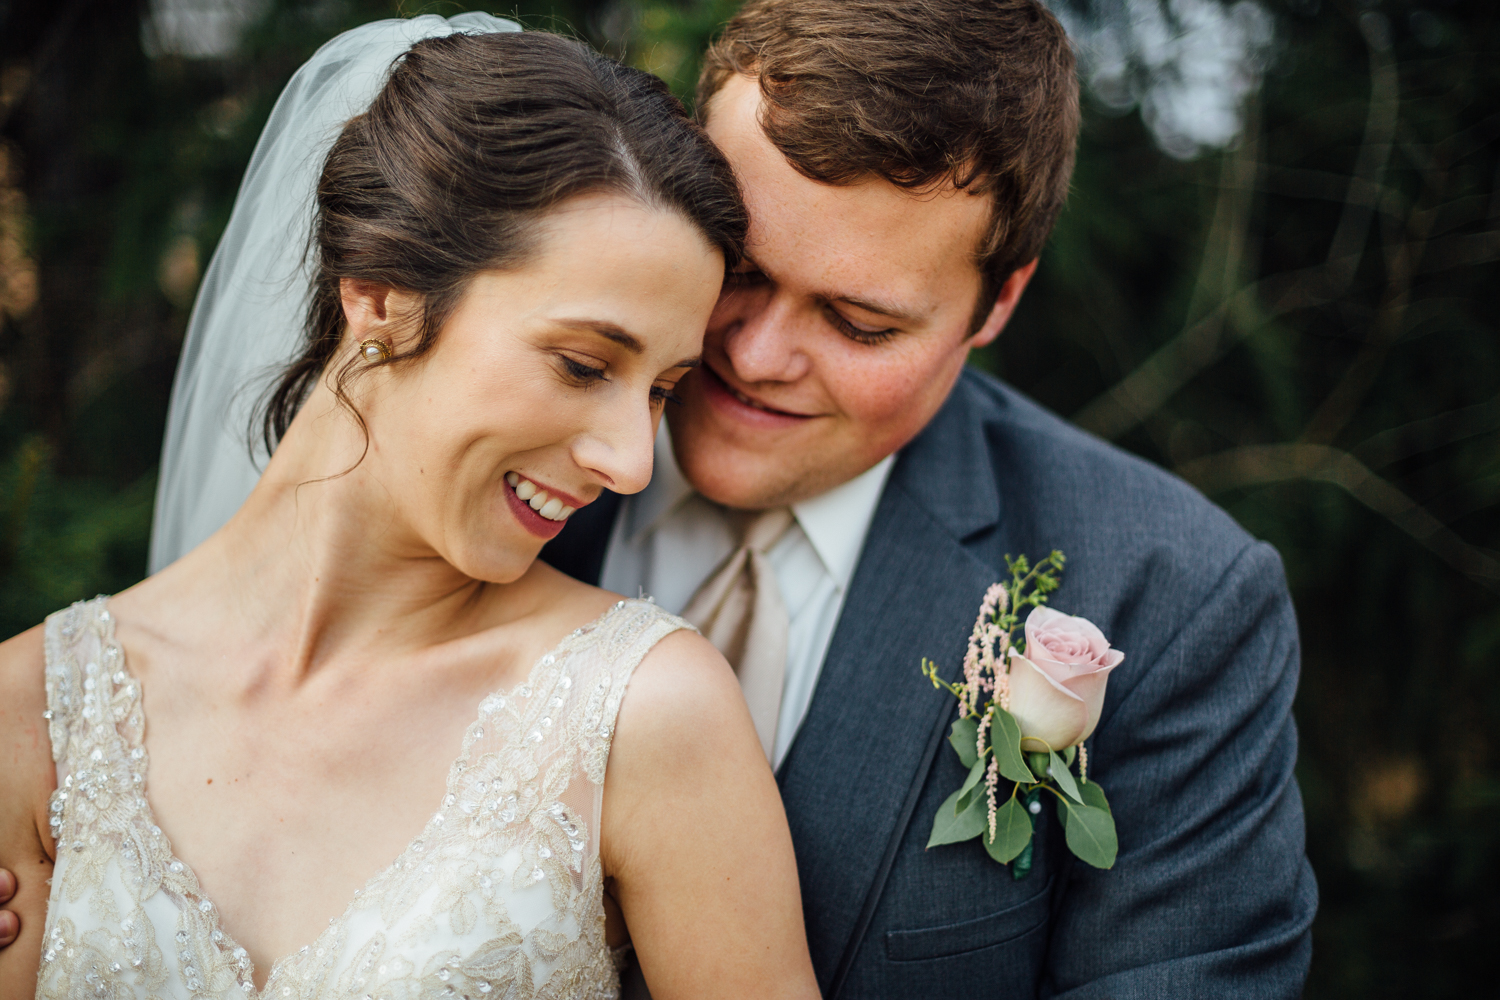 Fun, Intimate Spring Wedding by Corrie Mick Photography-64.jpg